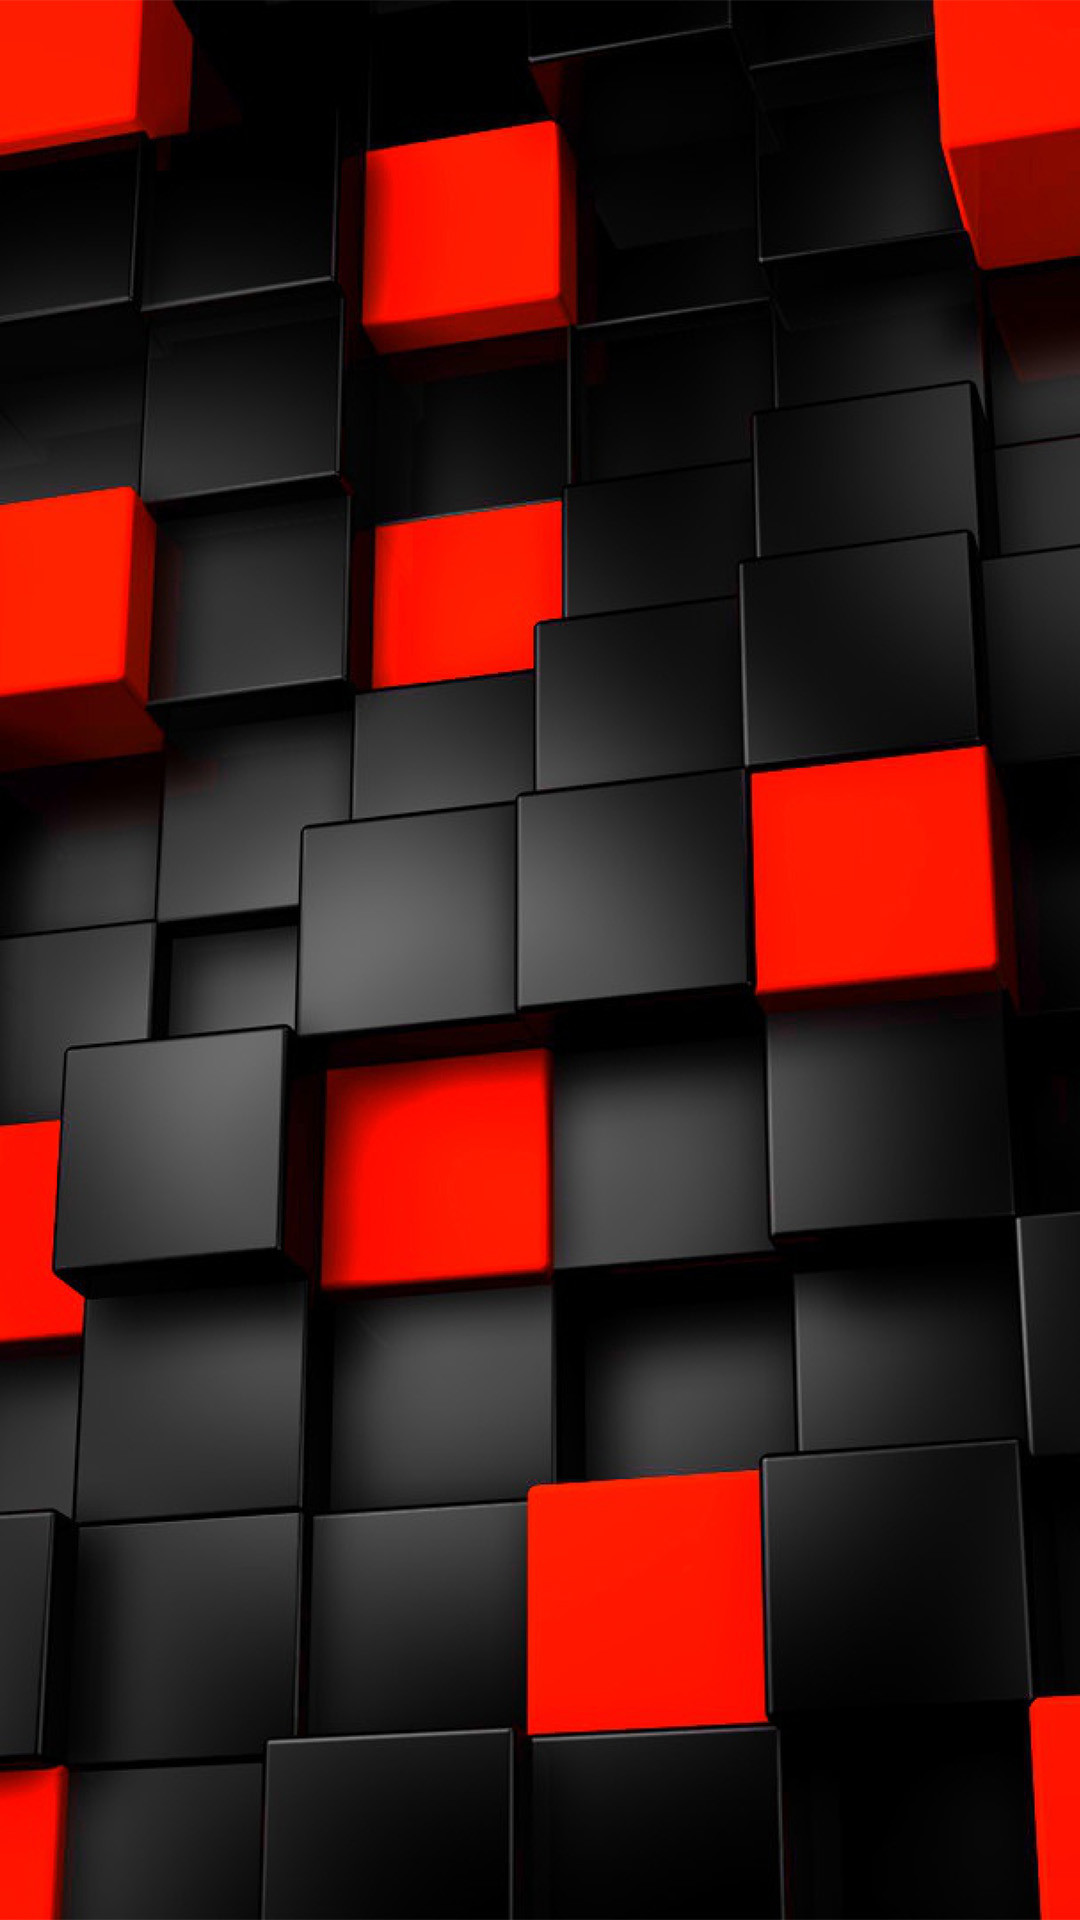 Black And Red Iphone 5 Wallpaper